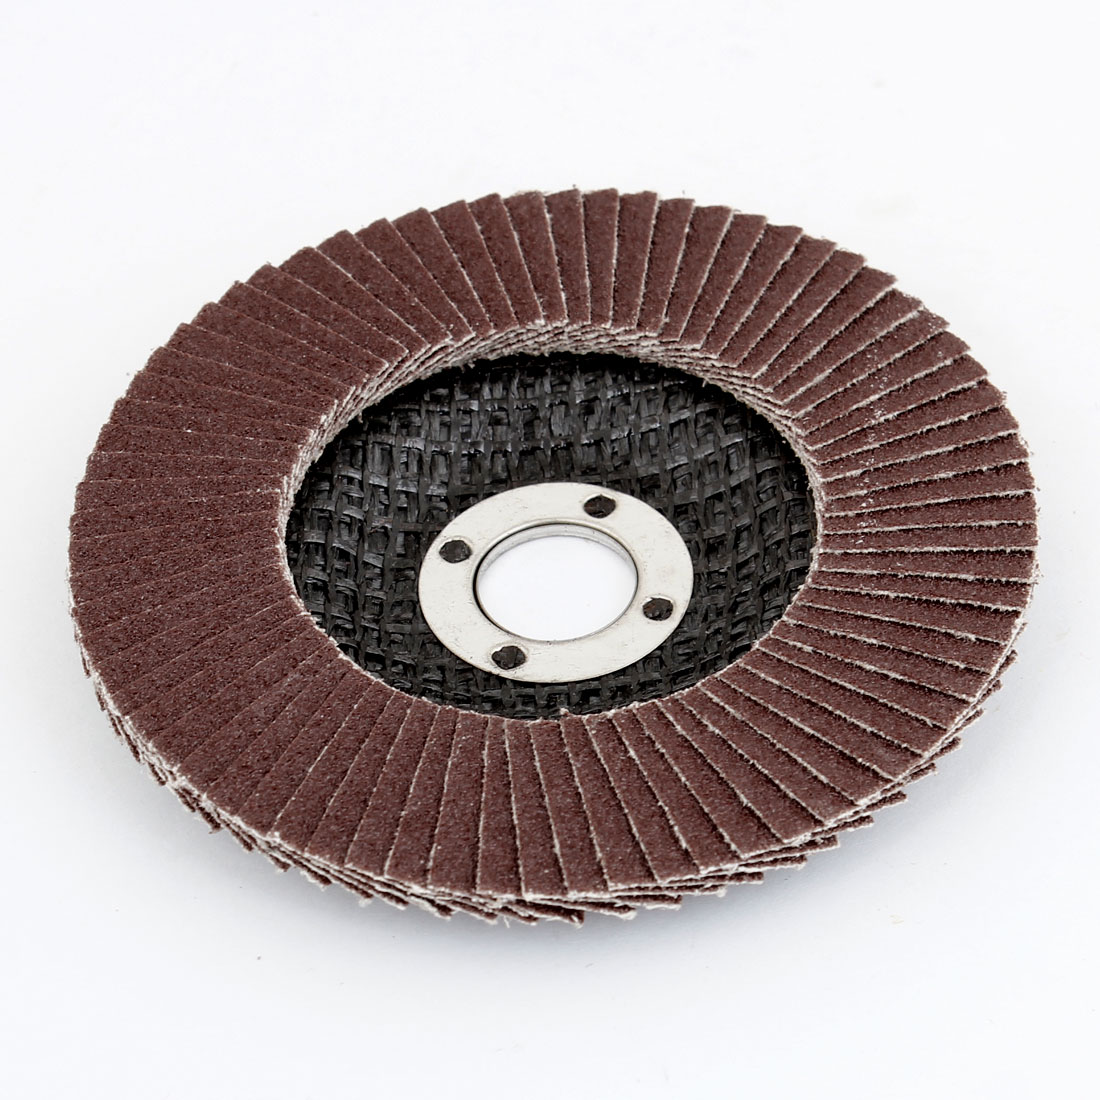 Replaceable 100mmx16mm Grinding Wheel Abrasives Slice Cutting Tool